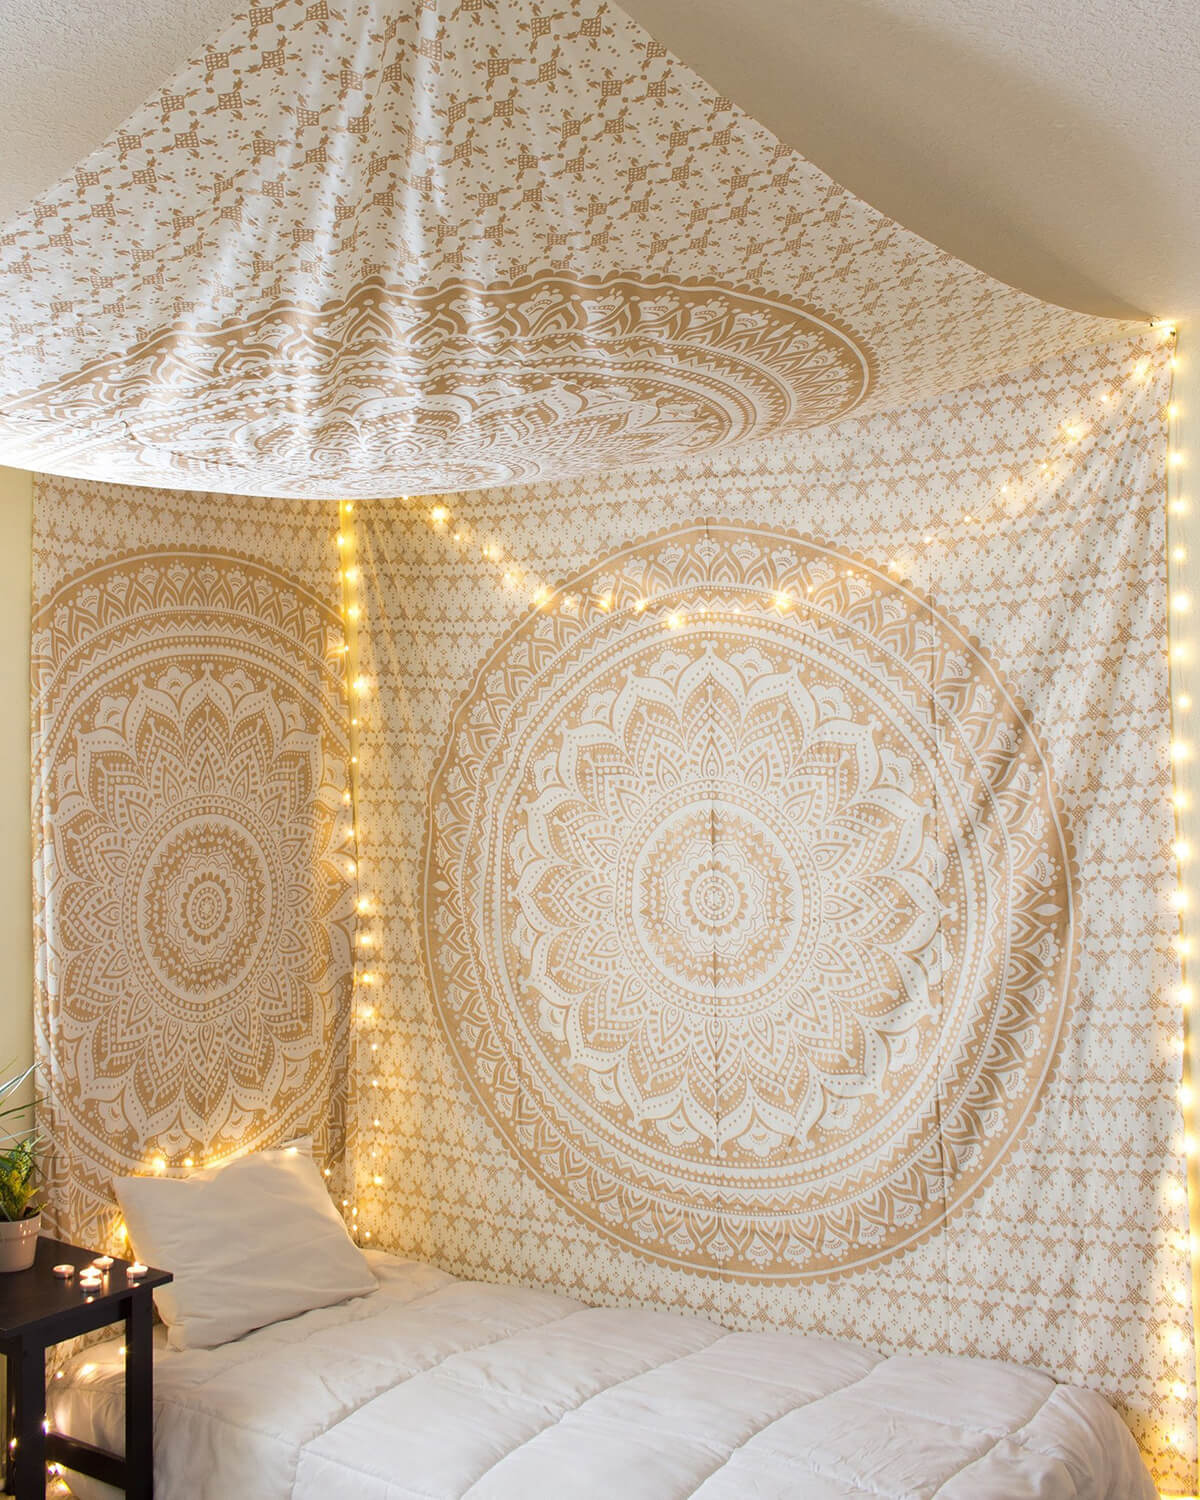 String of Lights Illuminates Mandala Designs on Canopy